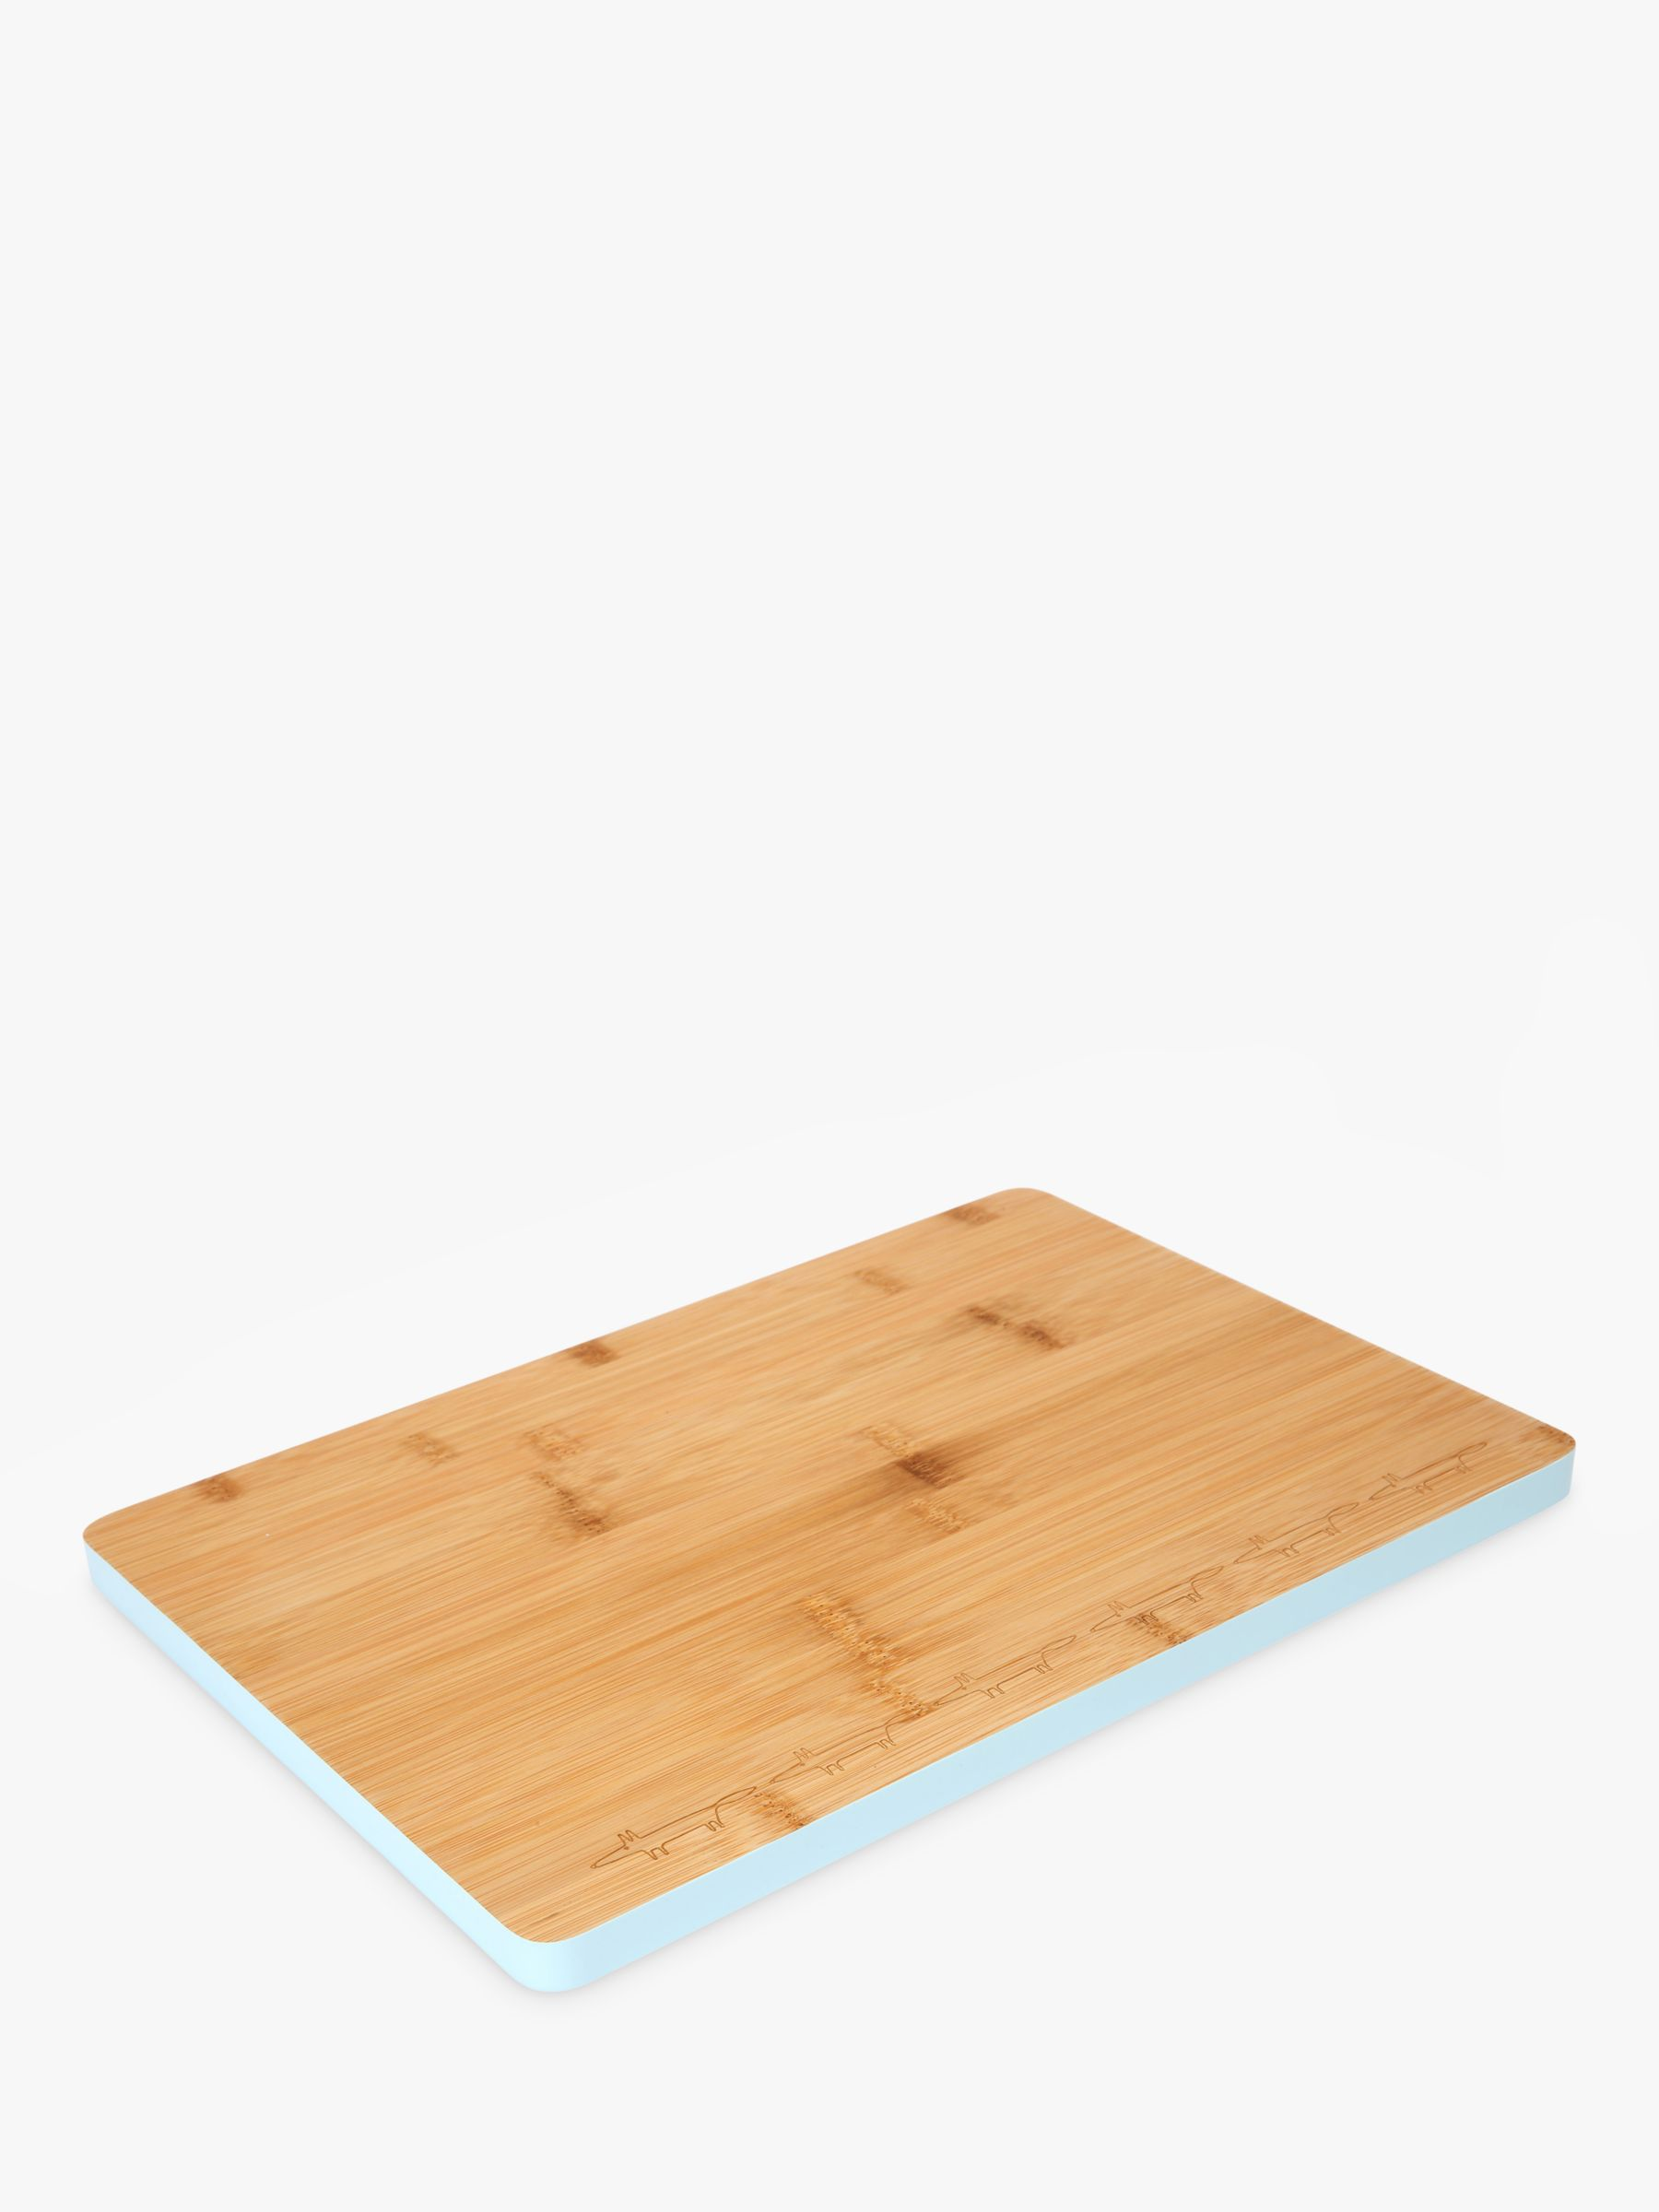 Scion Mr Fox Medium Bamboo Chopping Board, Light Blue